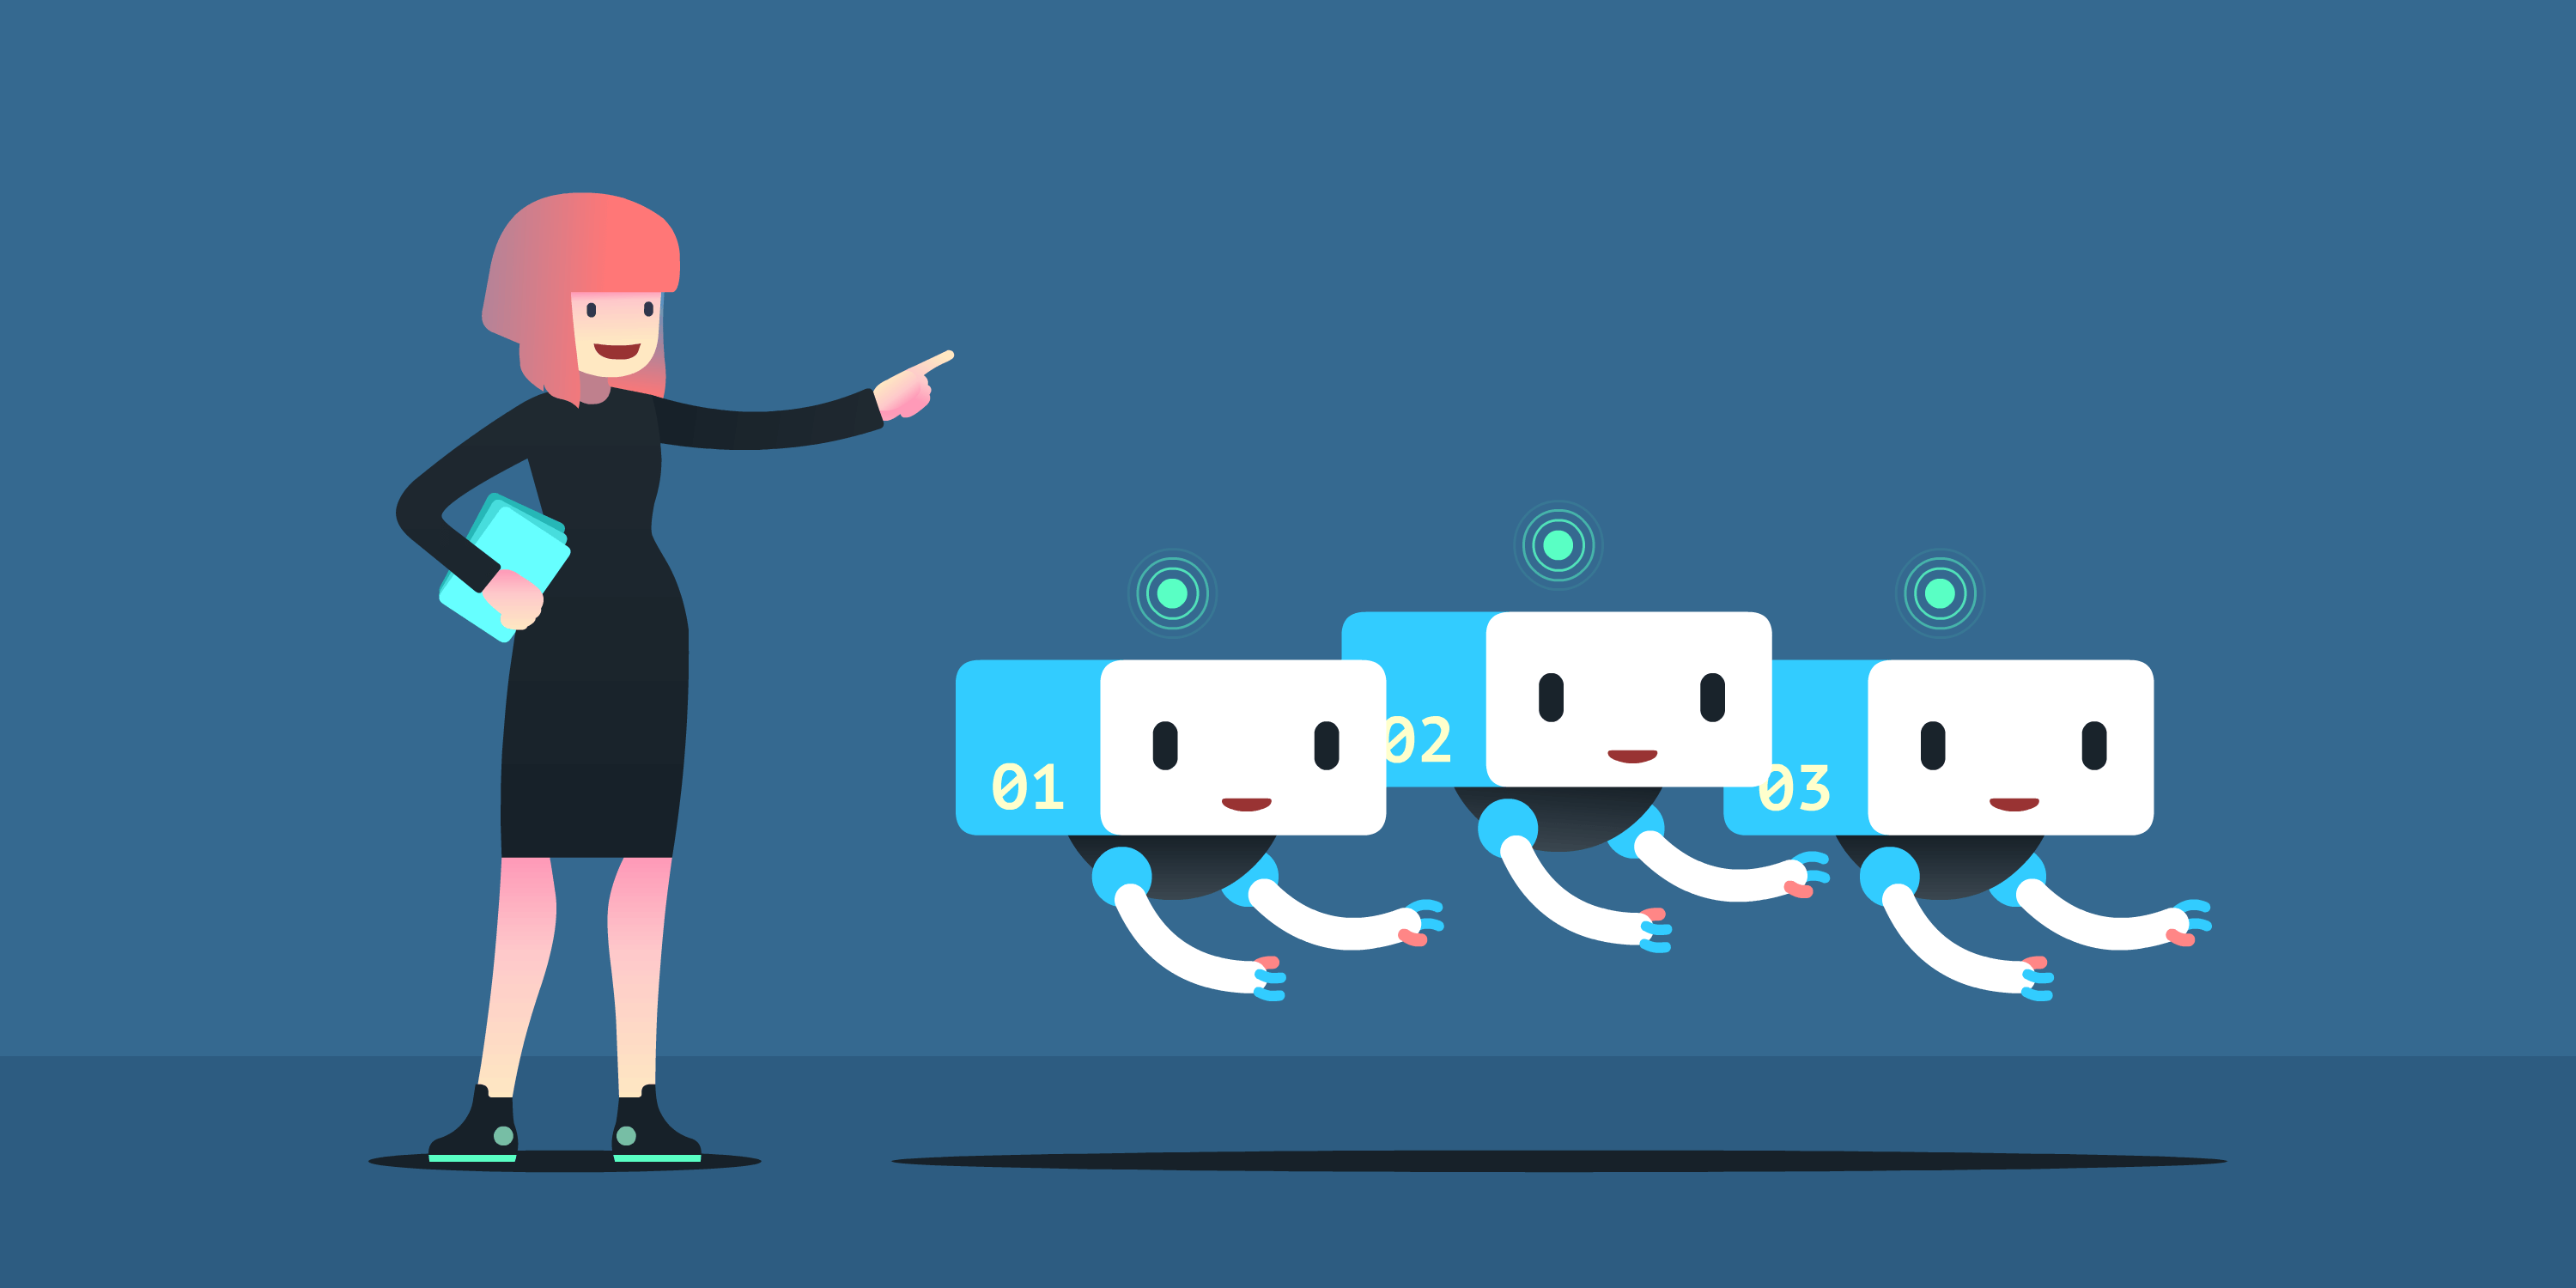 Artificial Intelligence Is About To Make Us All Managers. But Are We Ready?